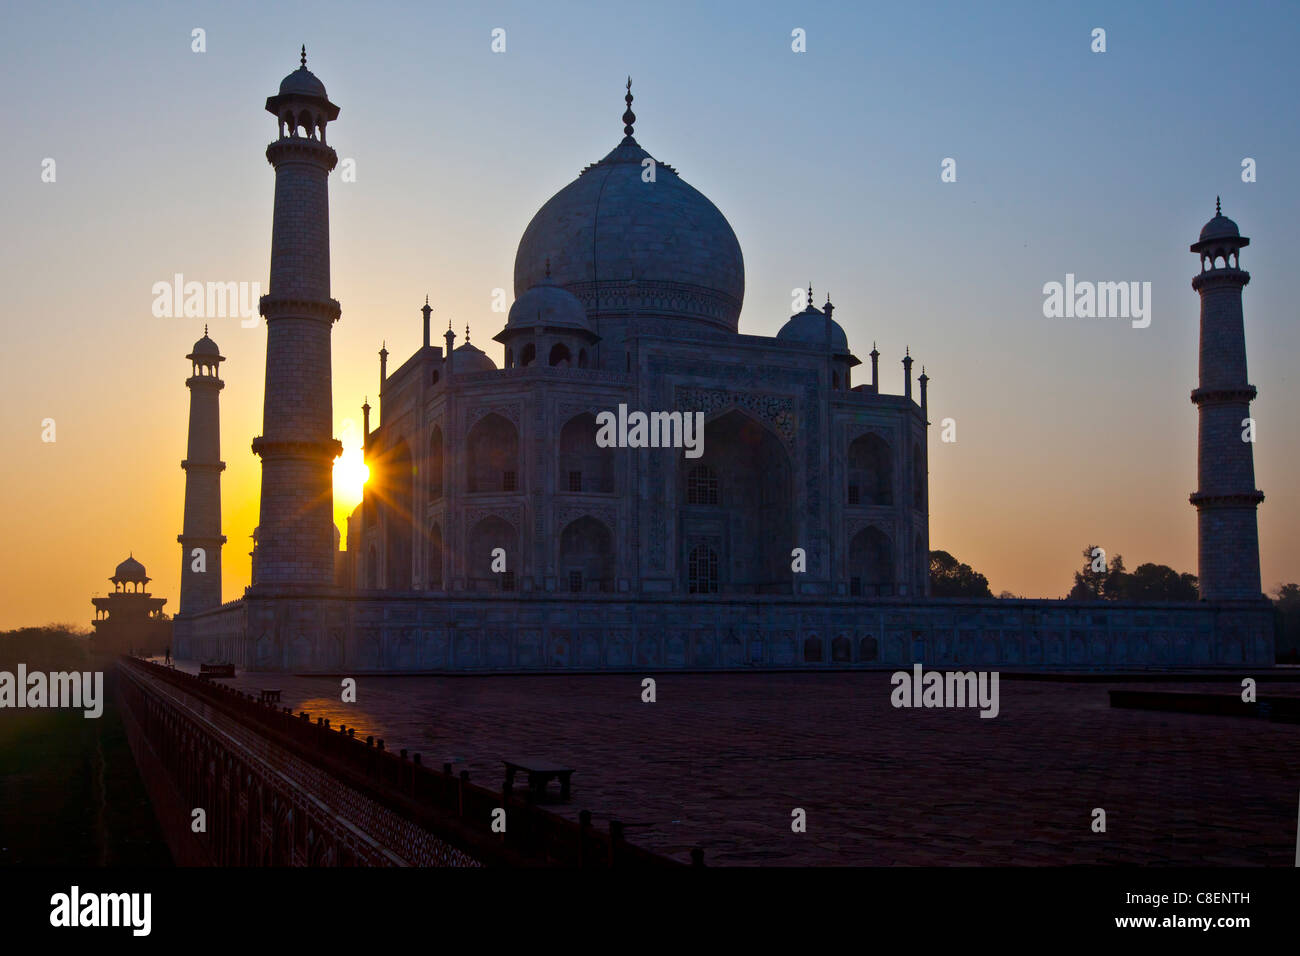 The Taj Mahal mausoleum western view (viewed from Taj Mahal Mosque) at dawn, Uttar Pradesh, India - Stock Image